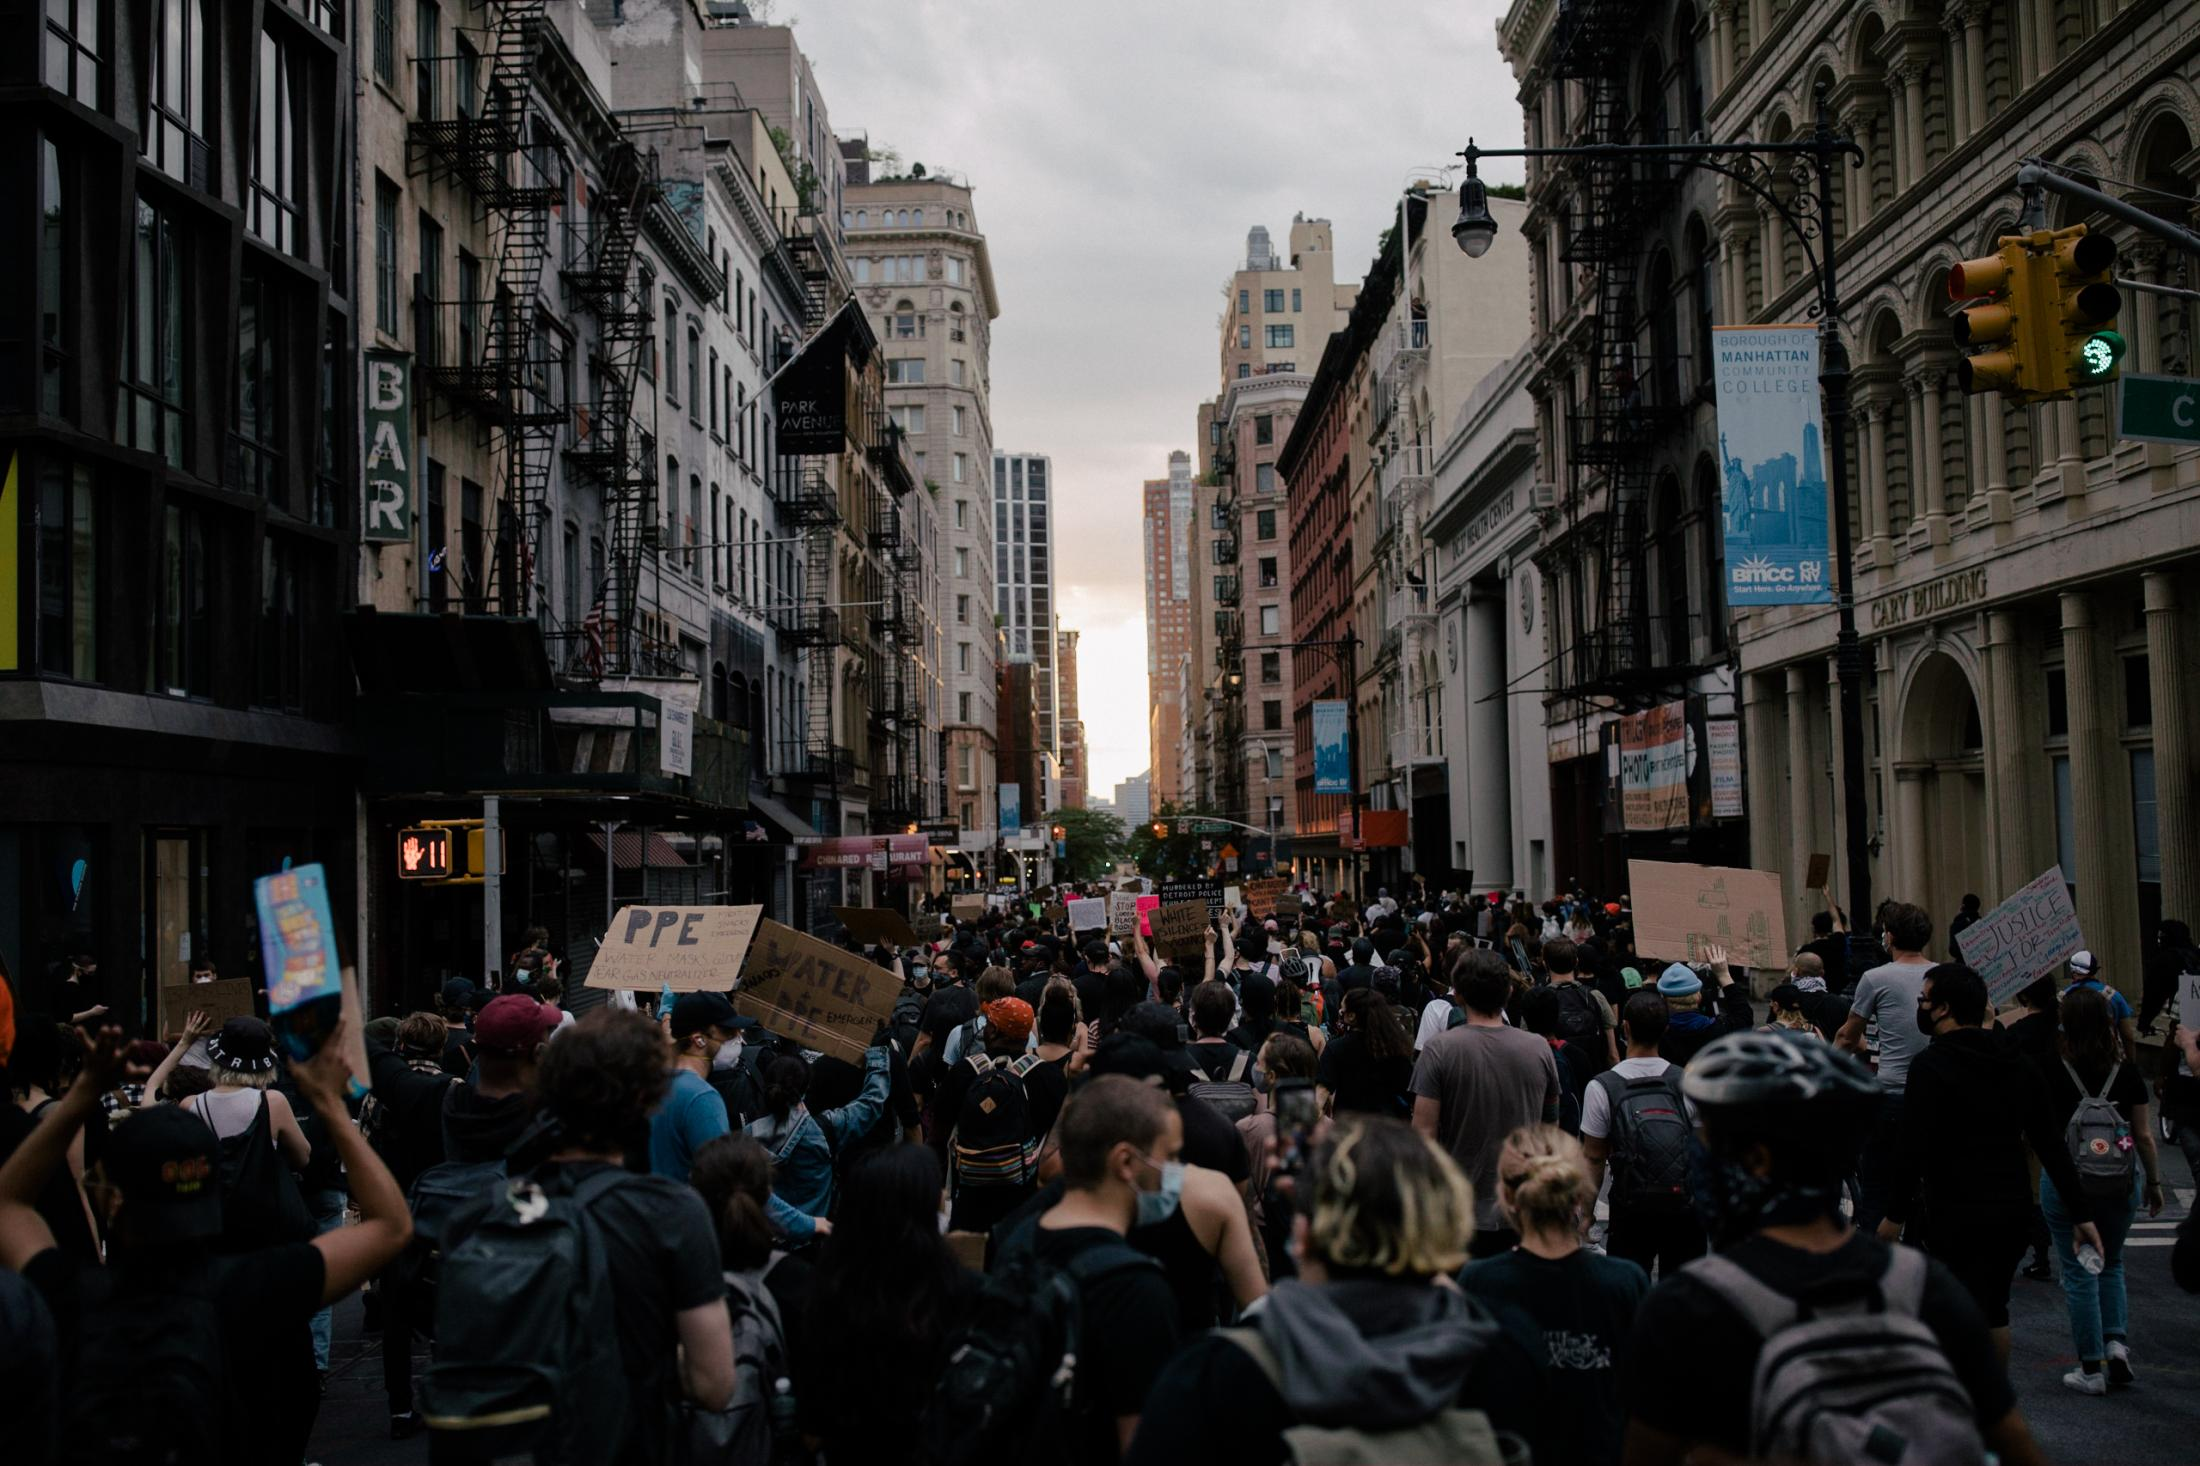 Protestors take to the streets of Manhattan to mourn the death of George Floyd who died in the hands of police and to express their displeasure with police brutality, systemic racism, and the use of excessive force by law enforcement to those of Black community, New York City, New York, U.S., June 2, 2020. Photographed by José A. Alvarado Jr.